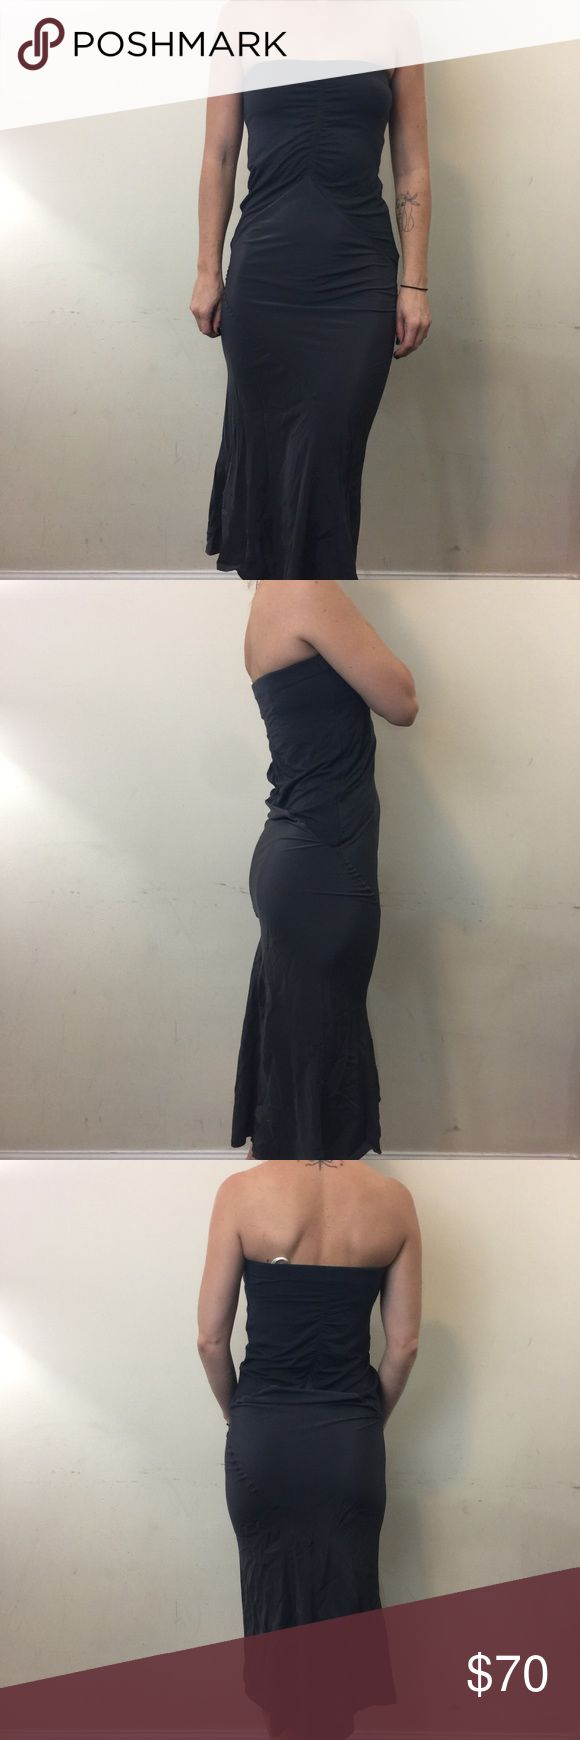 Reiss Charcoal Ruched Satin Silk Strapless Dress Reiss Dress Satin accents with a ruched body in sections is very flattering and has an elastic top. Reiss Dresses